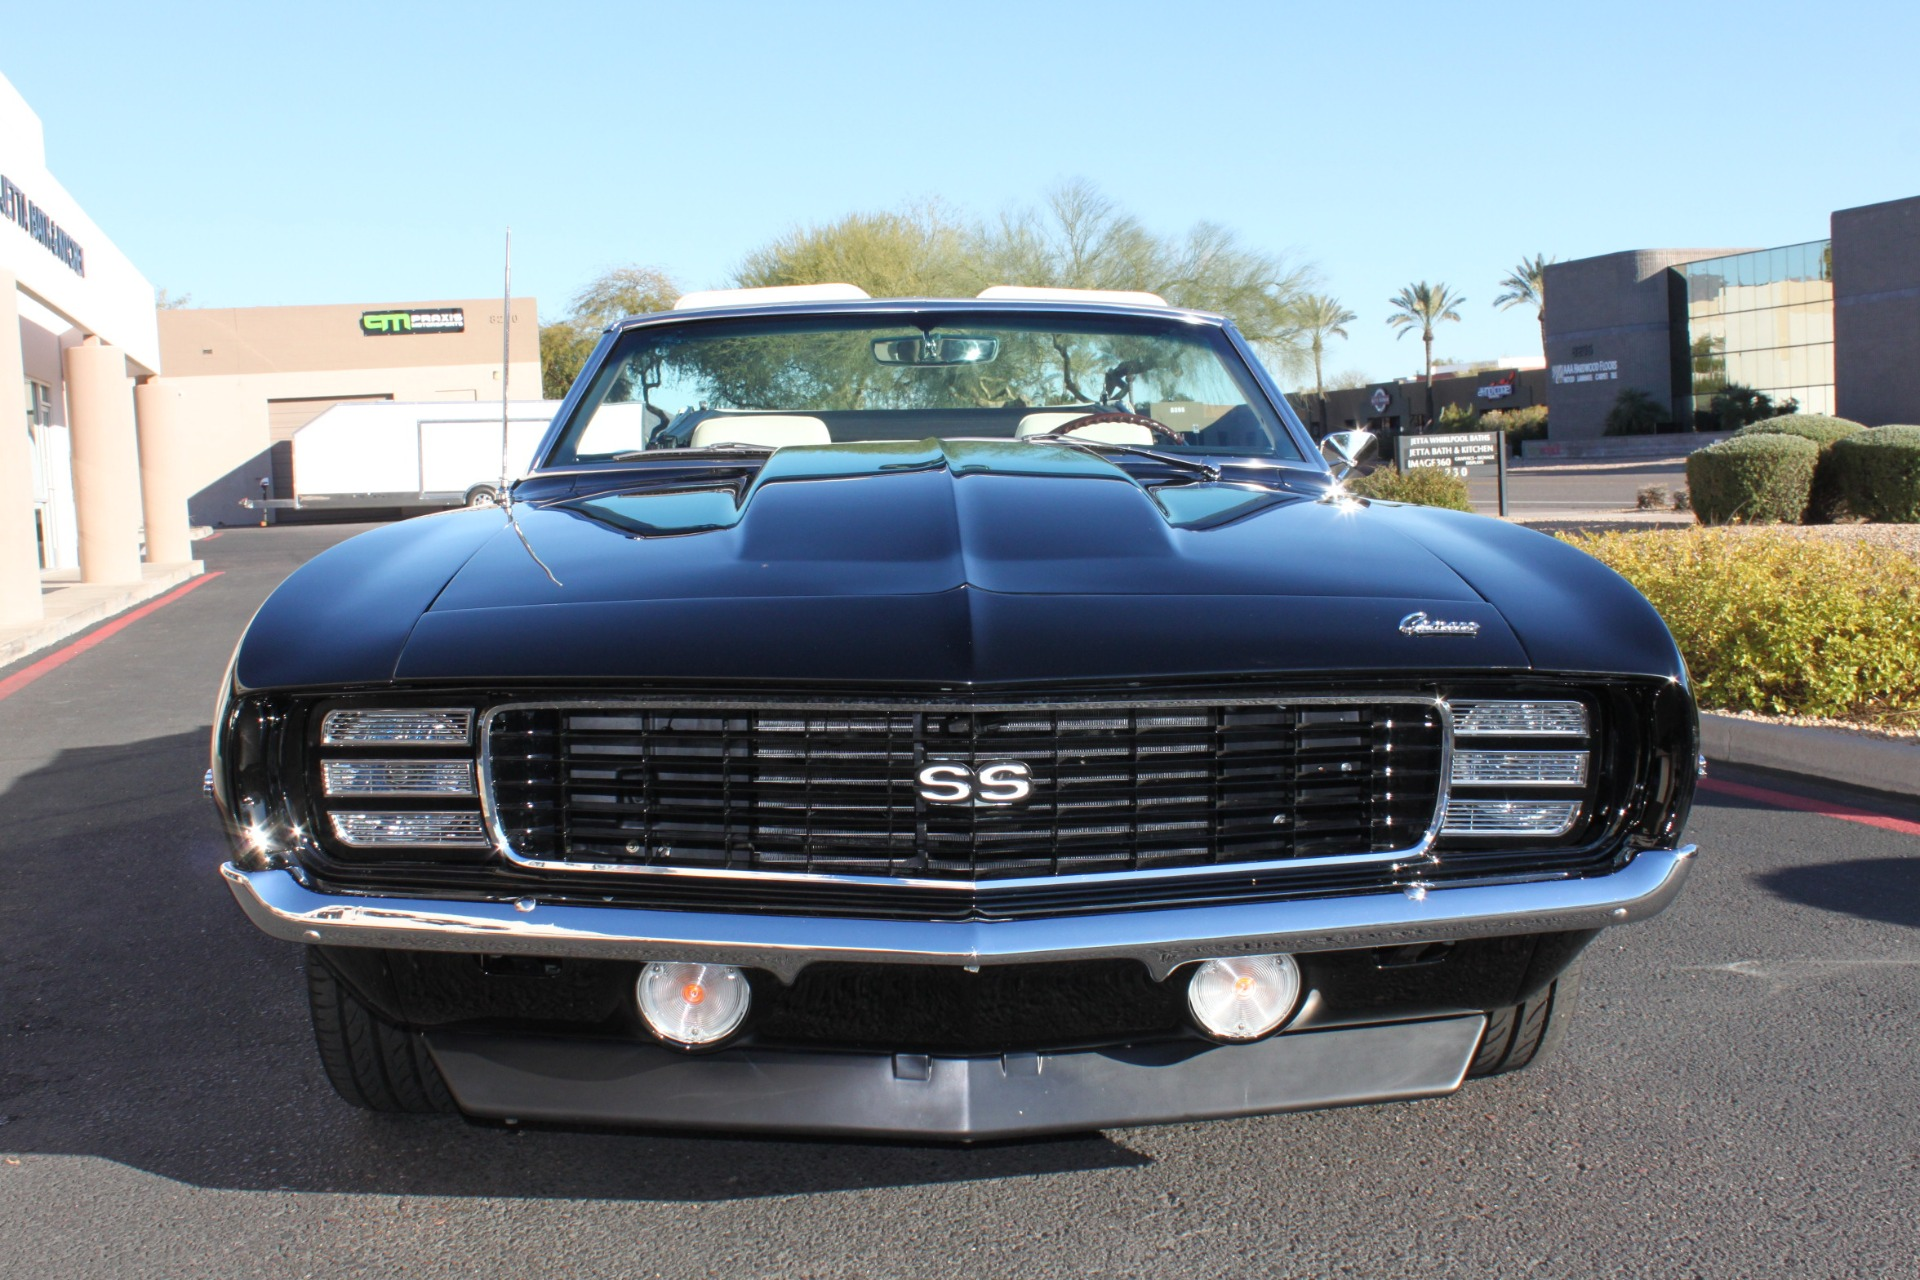 Used-1969-Chevrolet-Camaro-SS/RS-Convertible-Chevrolet